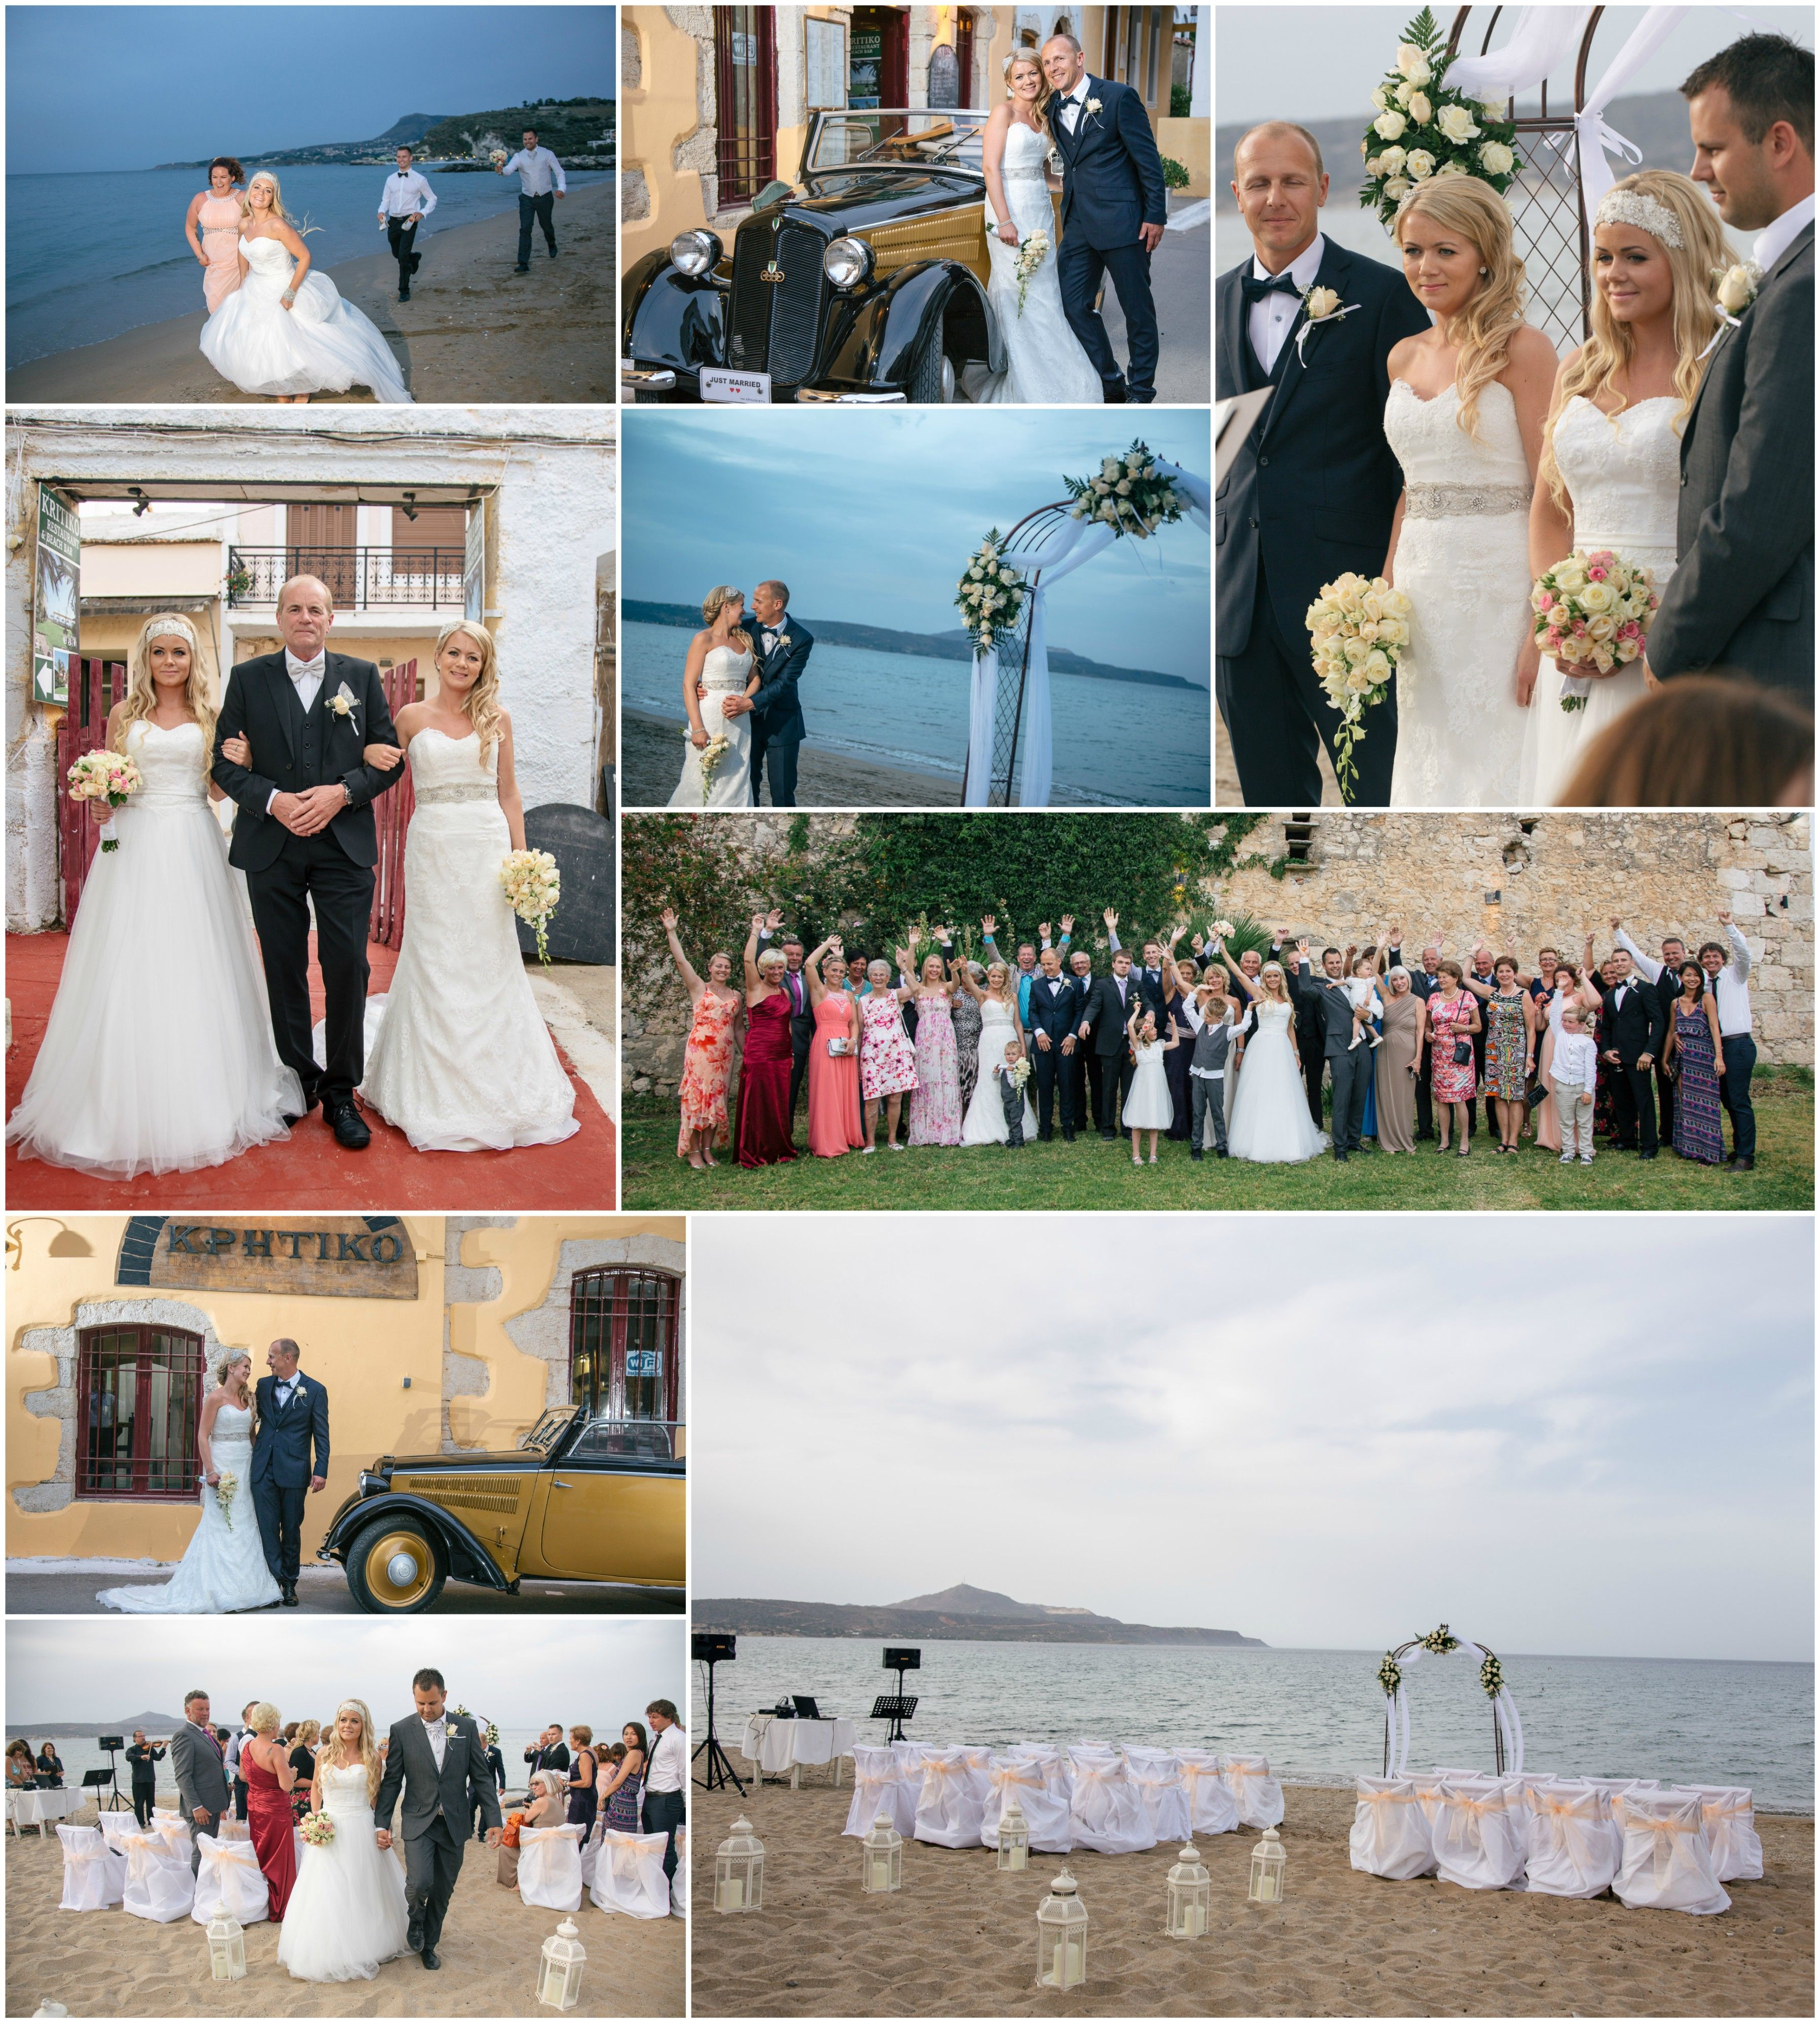 Double Wedding Two Sisters From Norway Tied The Knot At The Same Time On This Beautiful Chania Double Wedding Wedding Organization Wedding Planner